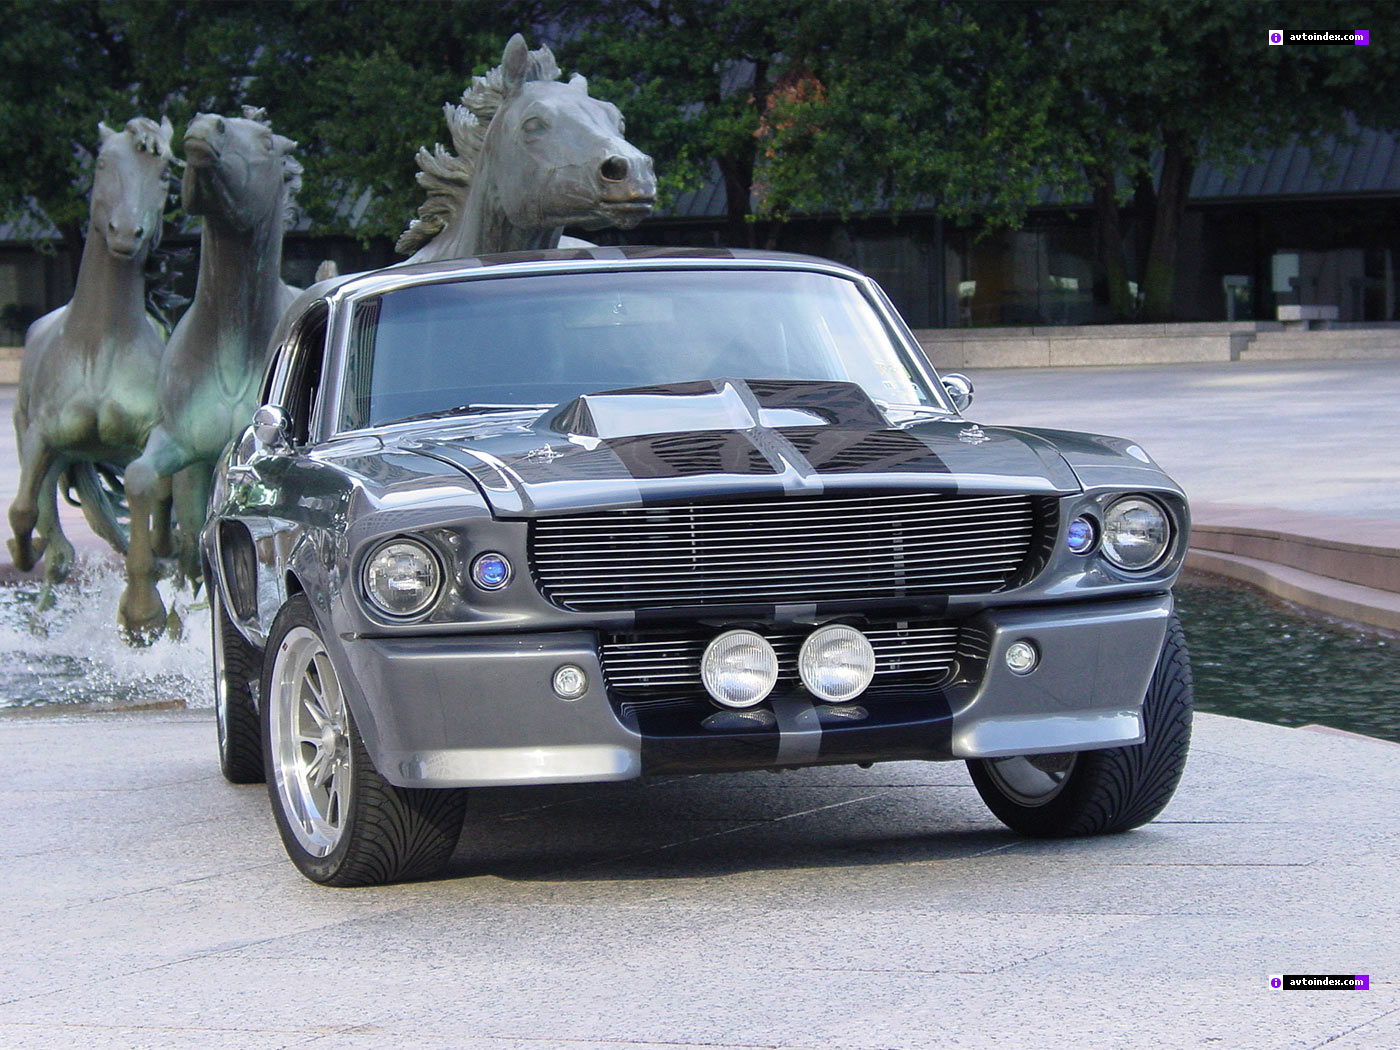 1967 ford mustang gt500 tribute eleanor up on sale on ebay - 1967 Ford Mustang Eleanor